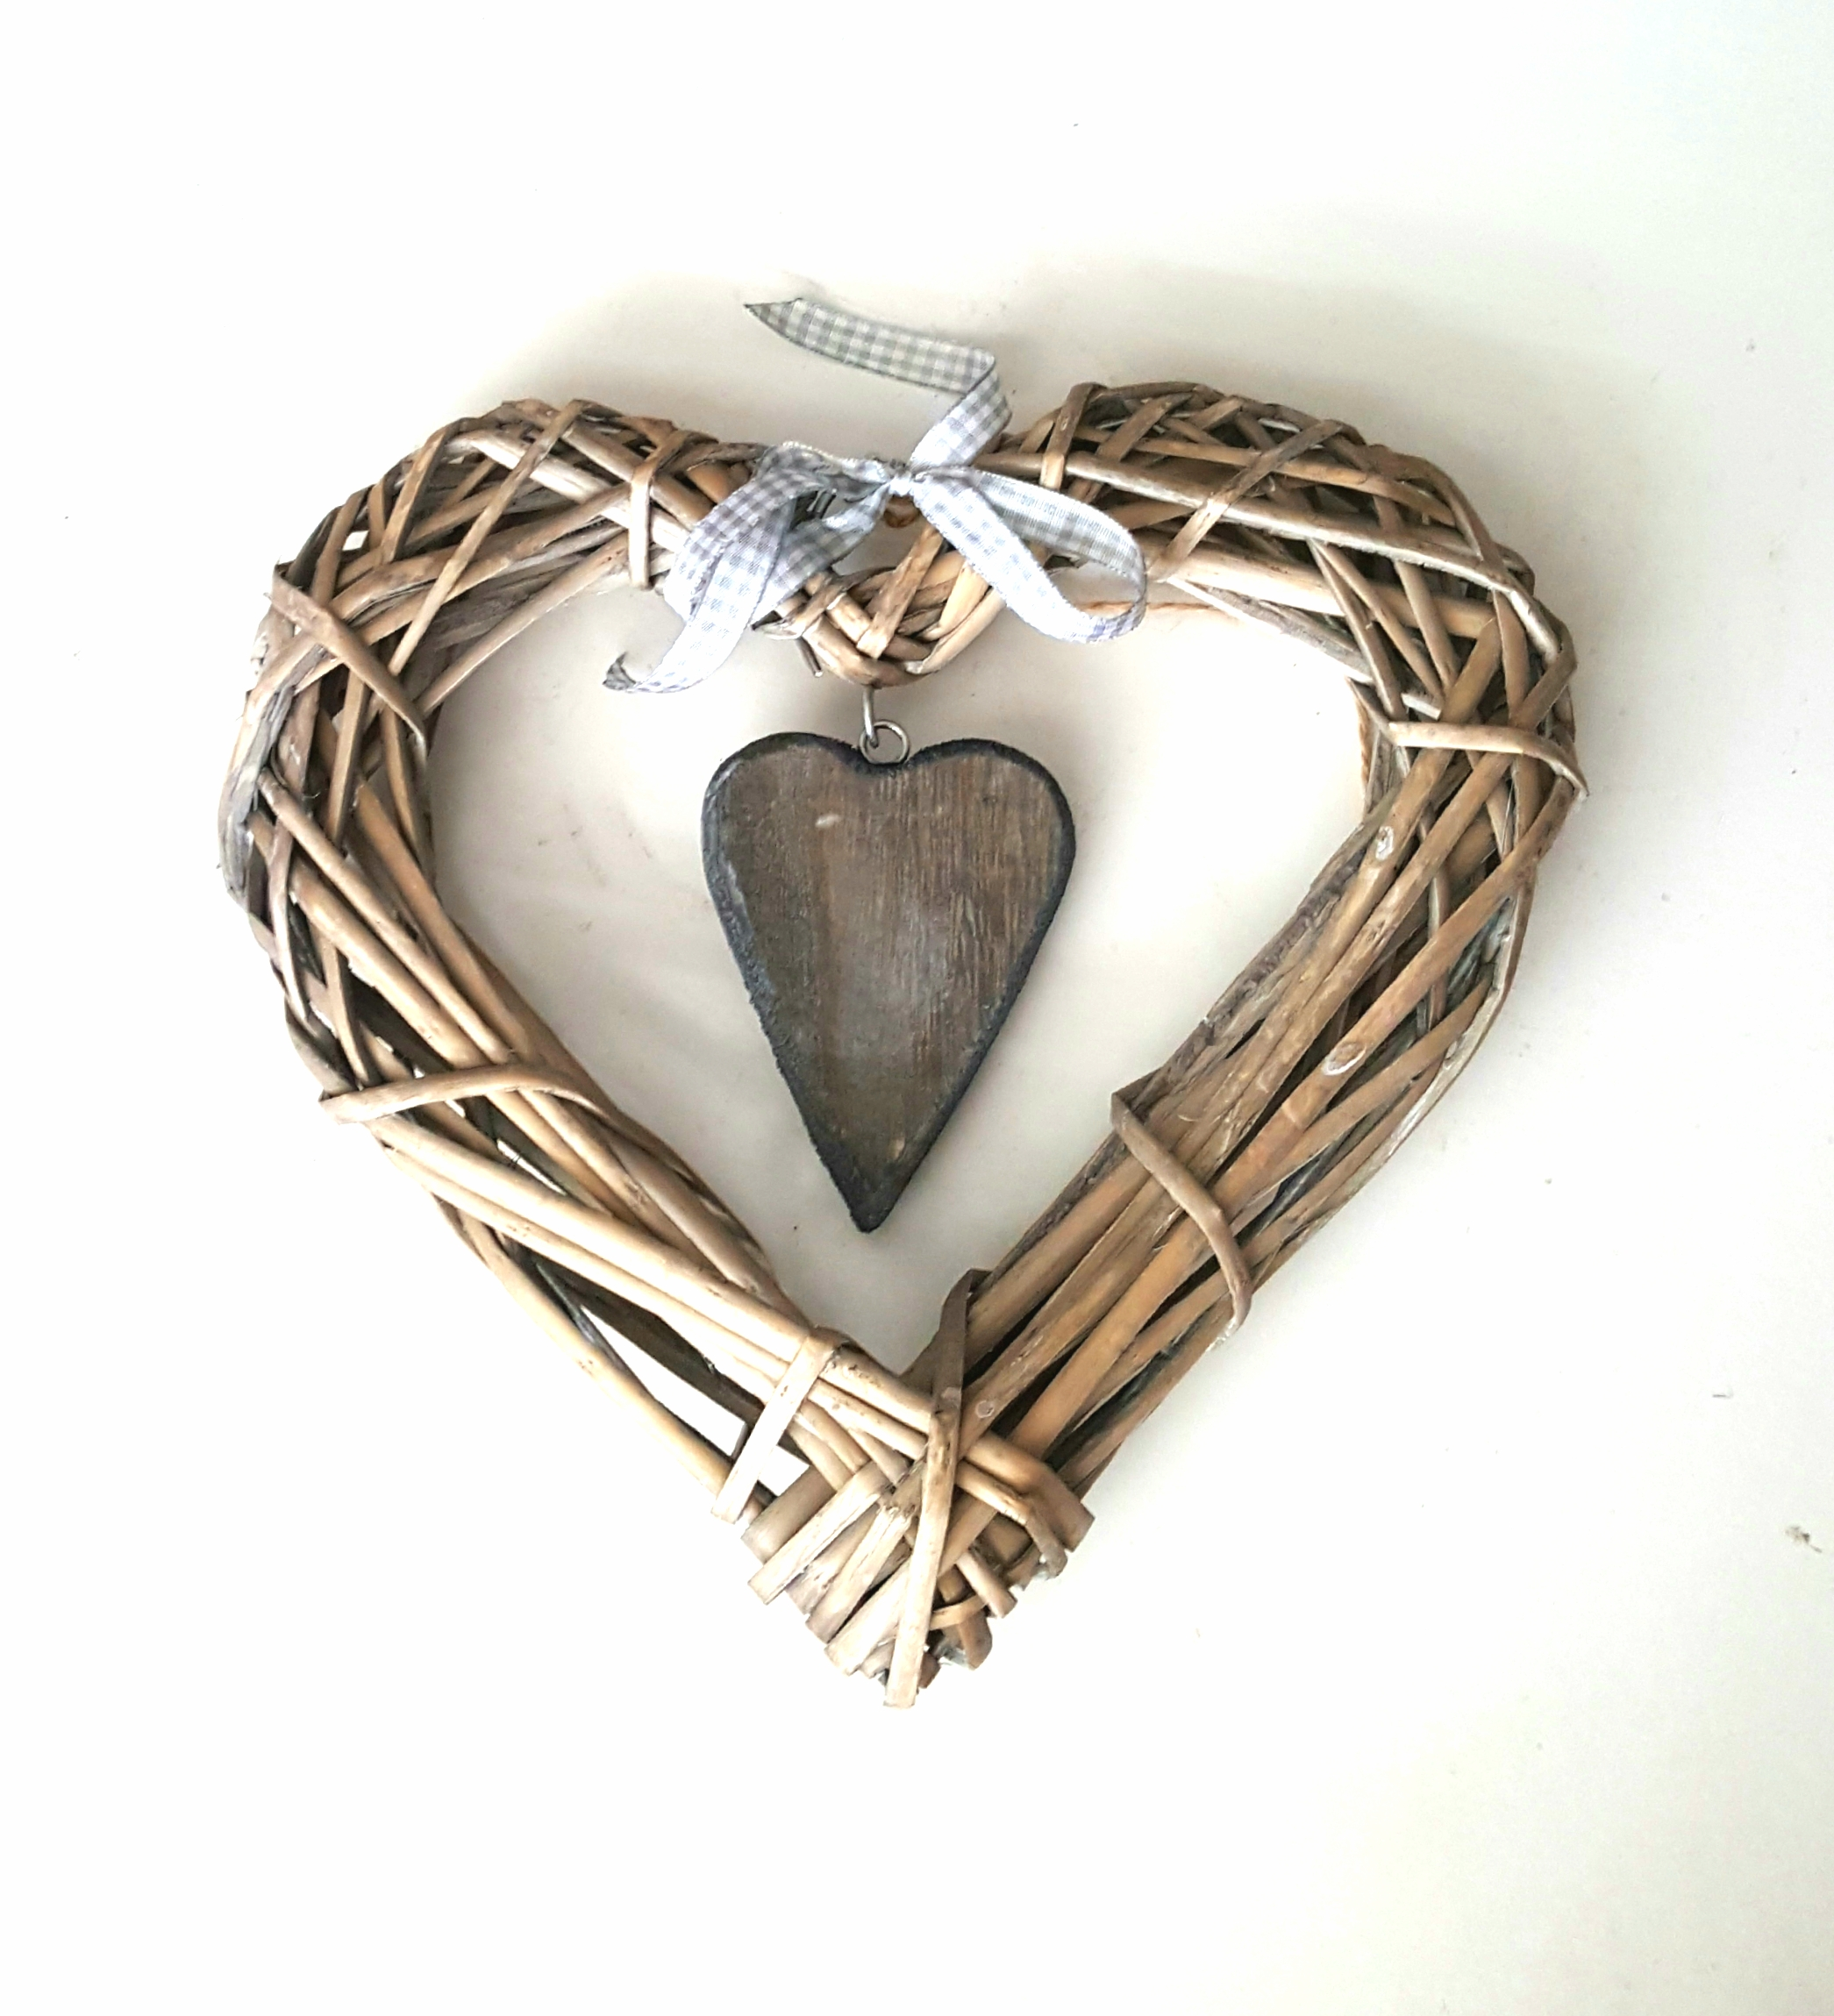 Wicker Heart 90p